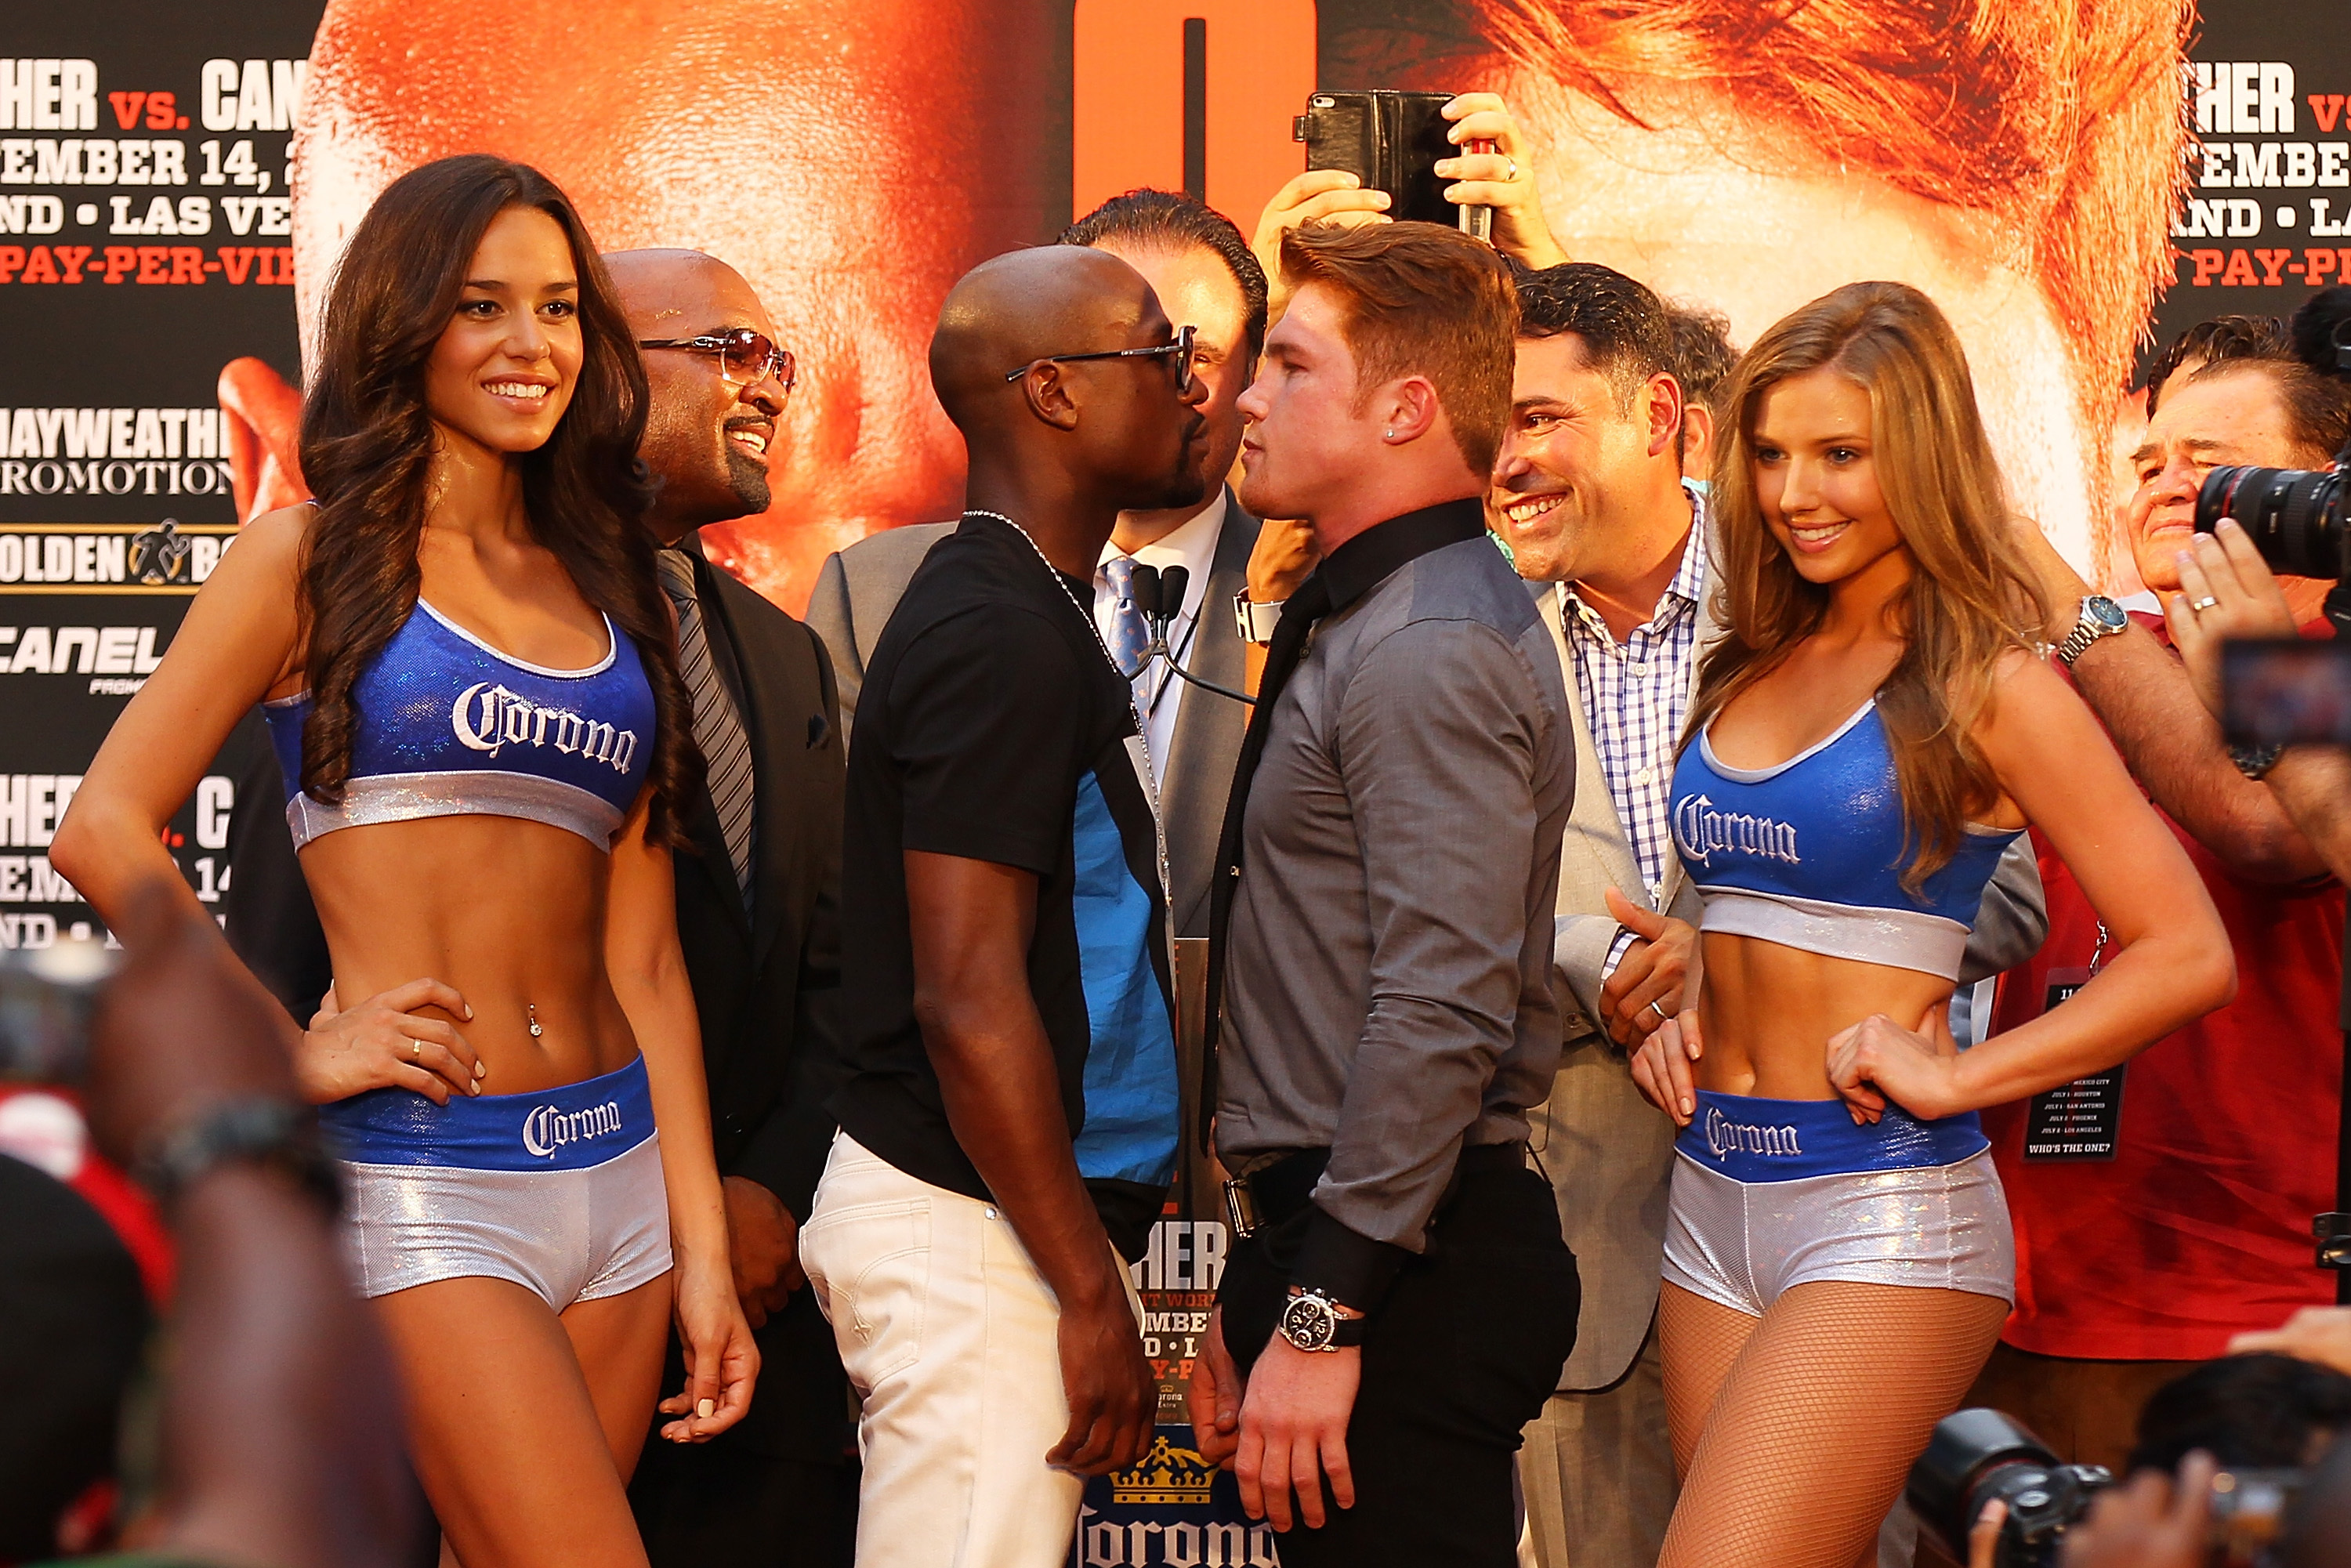 Betting odds mayweather vs canelo top scorers premier league 2021 betting trends